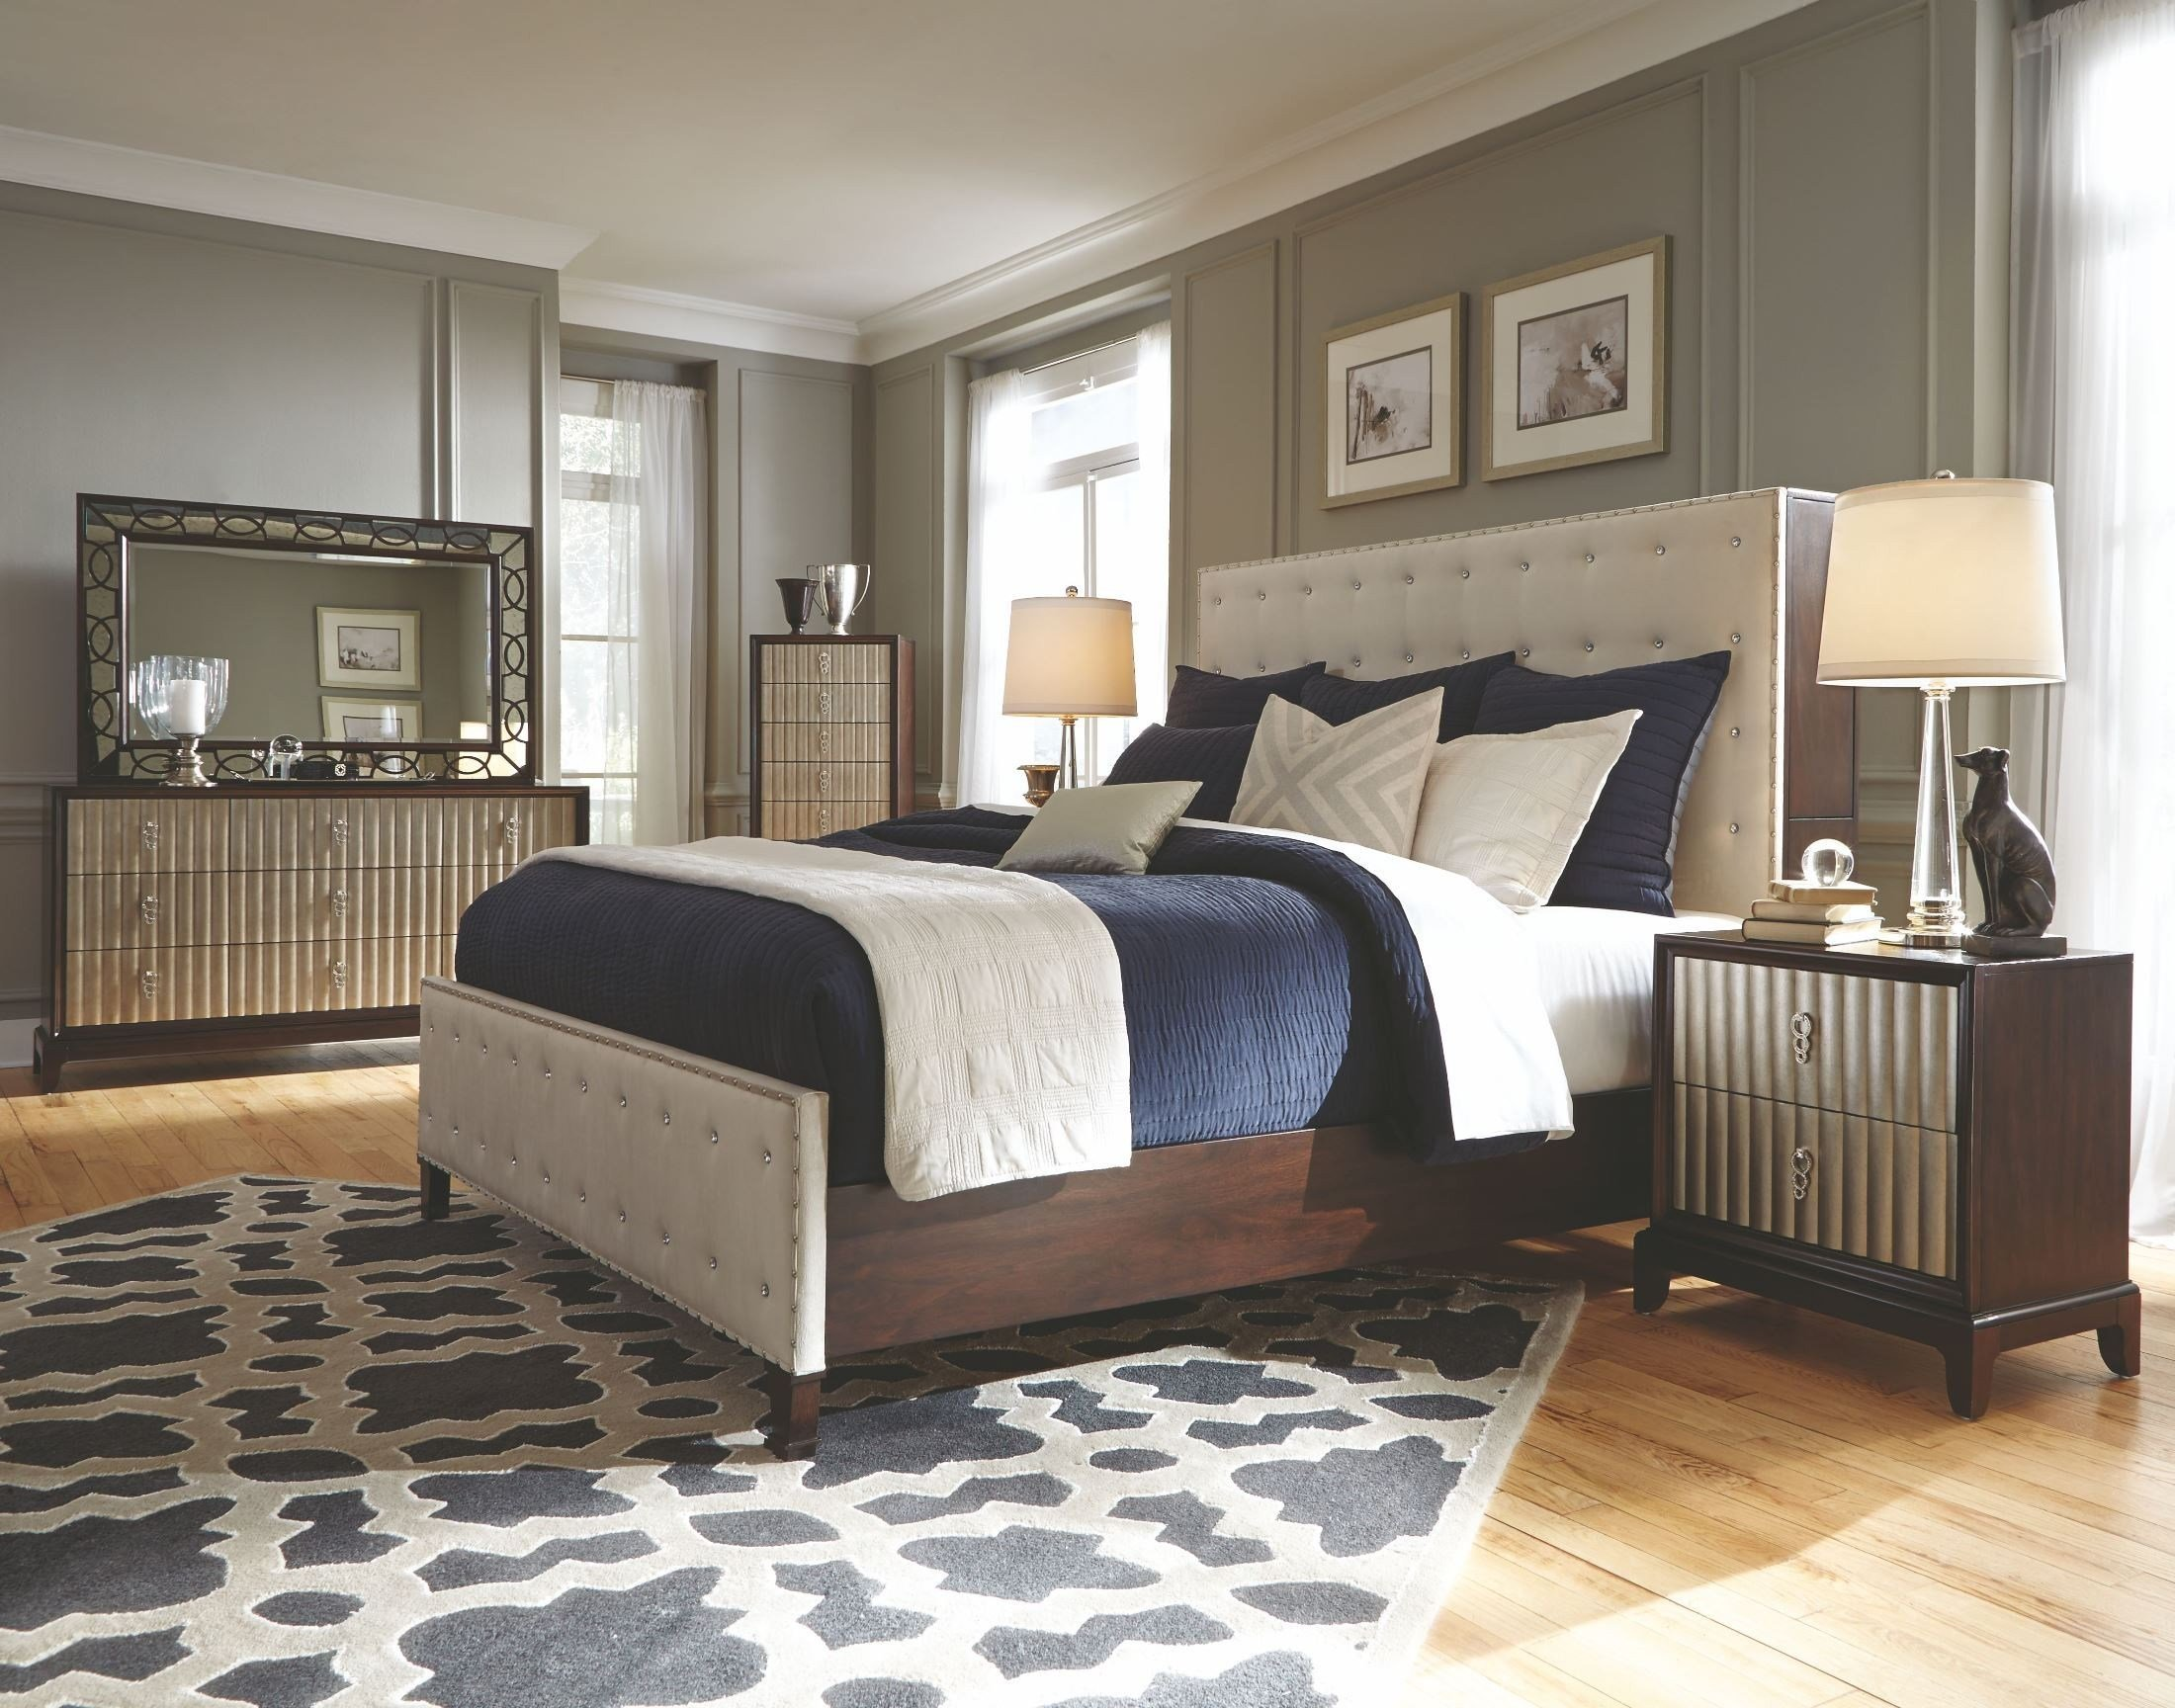 Best Gramercy Sable Panel Upholstered Bedroom Set B3564 54H 54F 54R Magnussen Home With Pictures